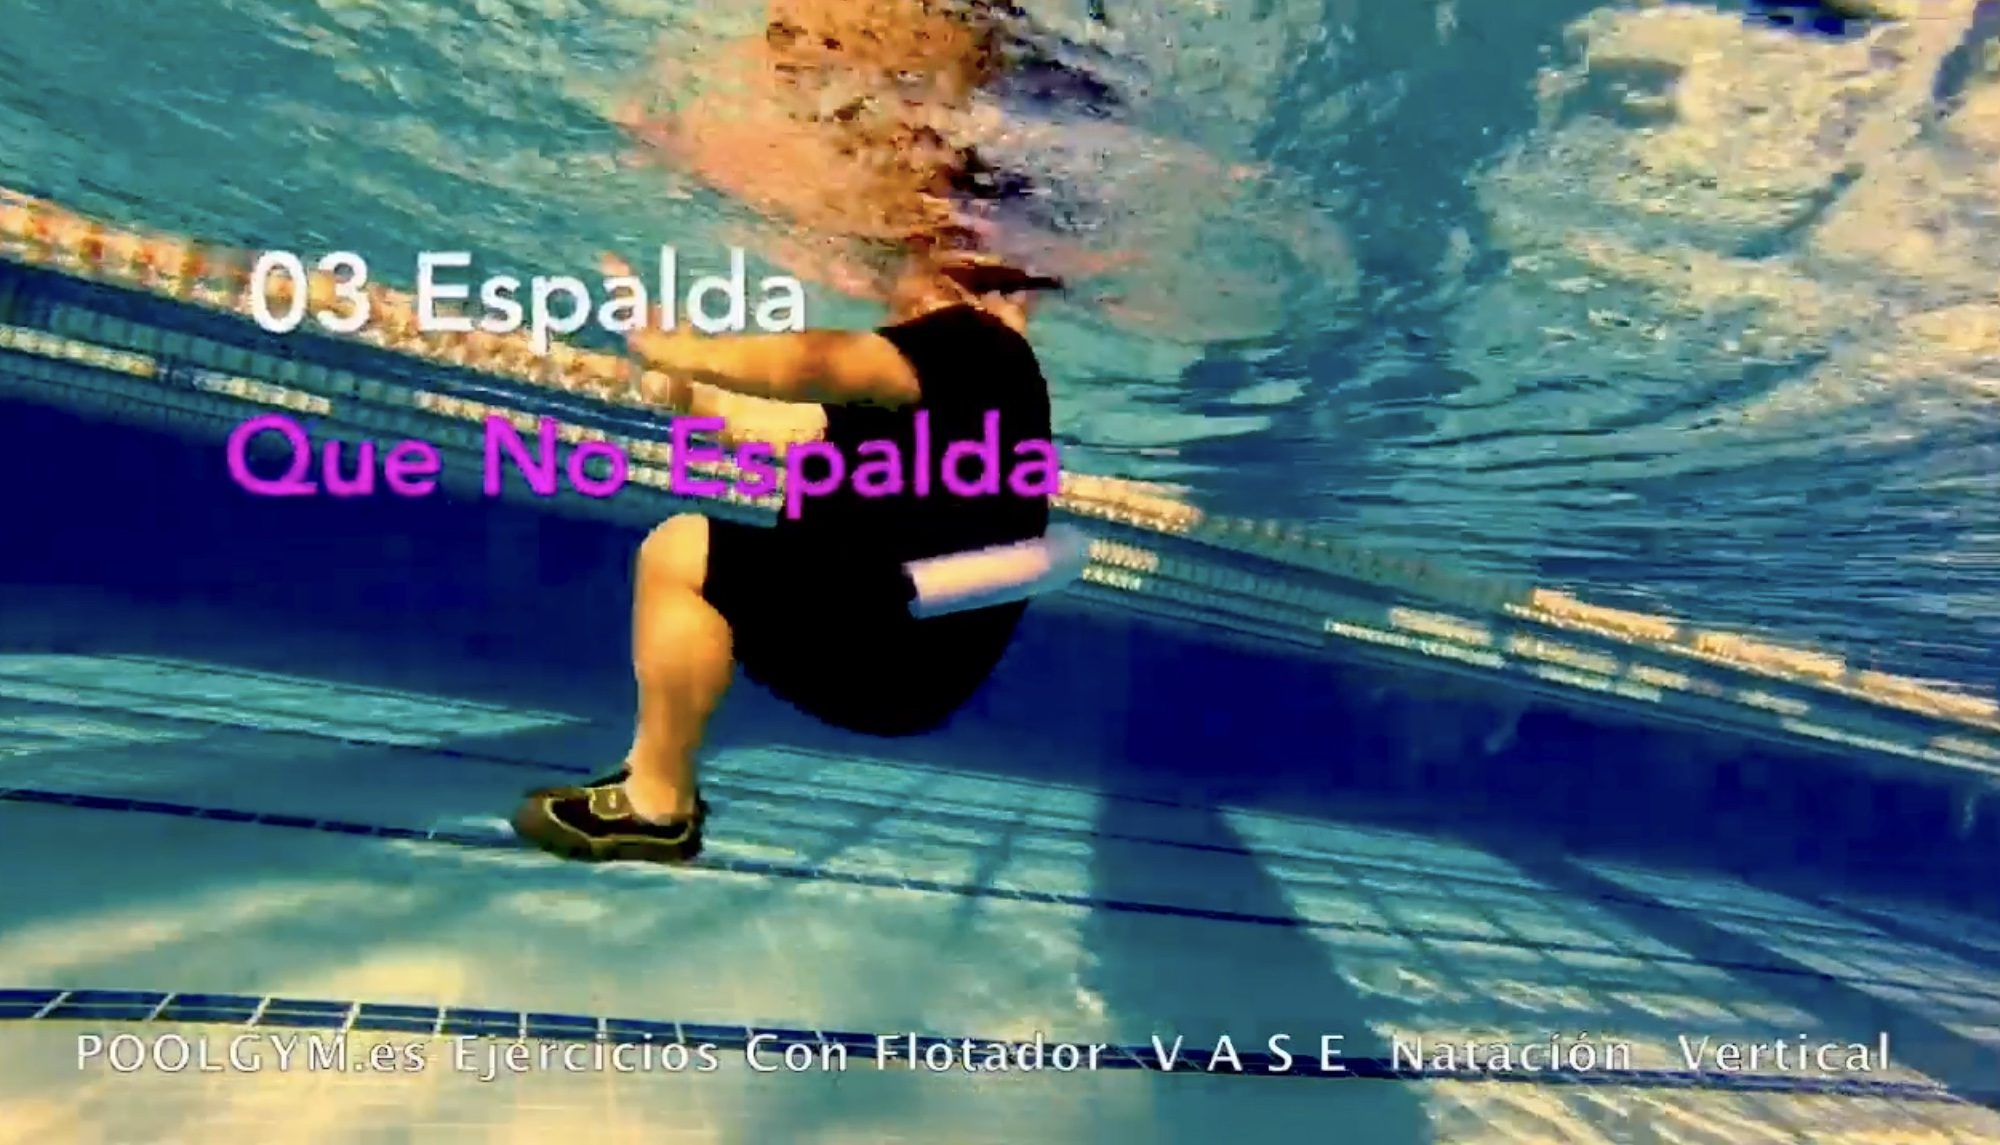 03 Espalada QUE NO poolgym